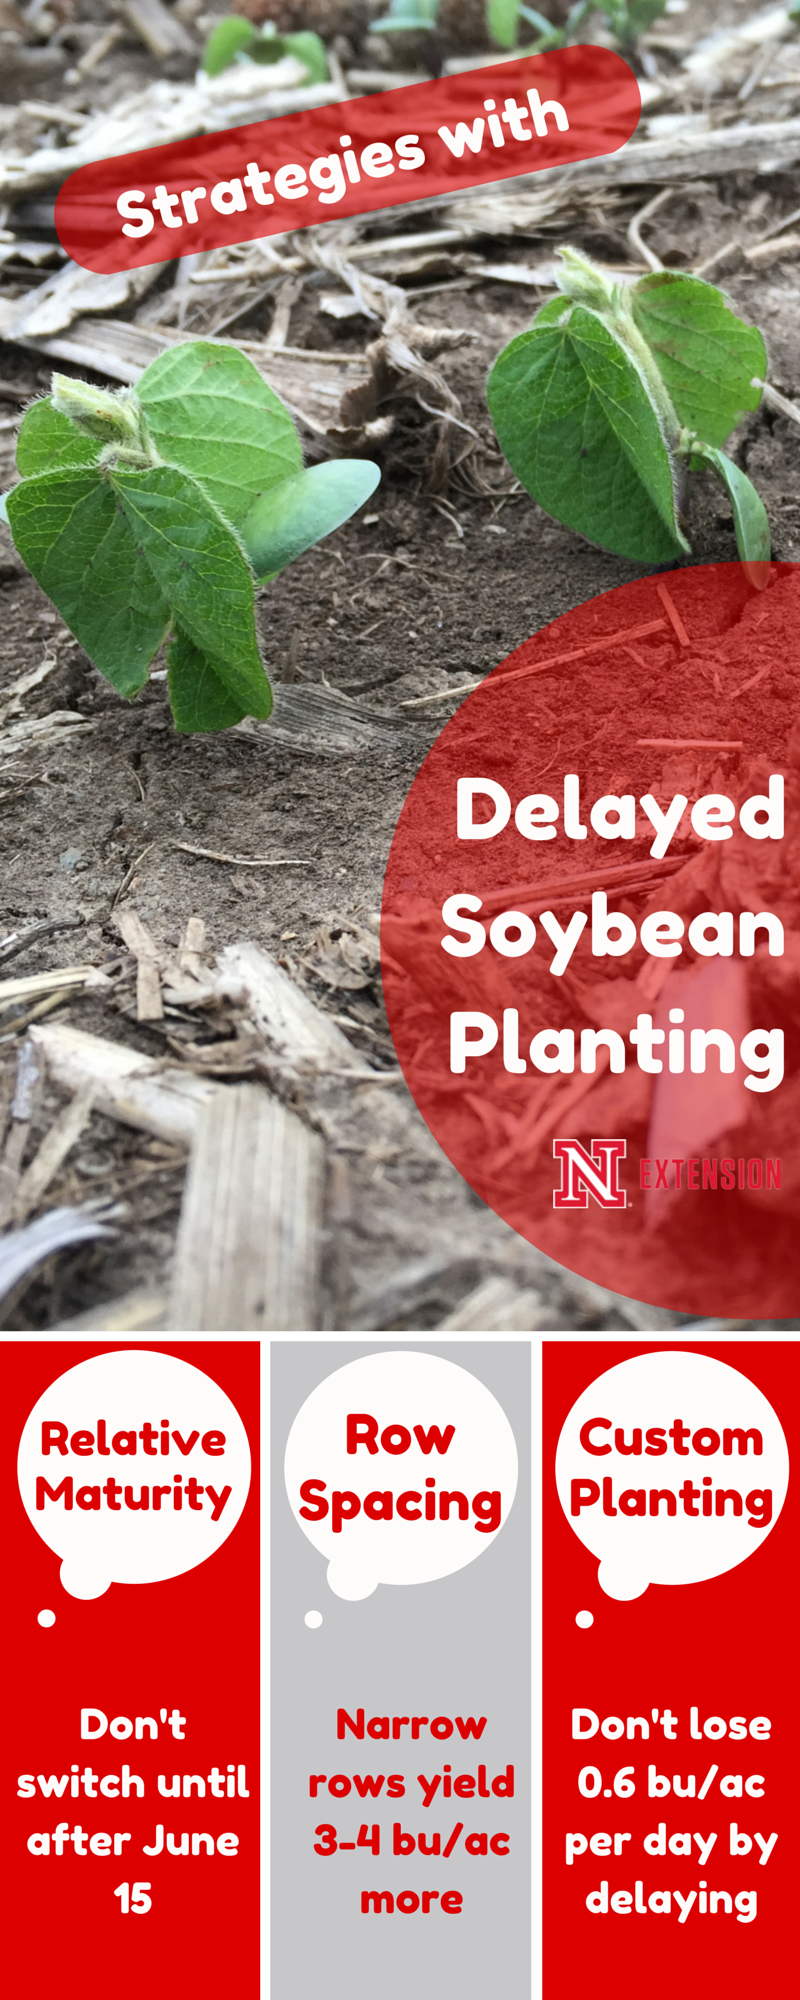 Benefits of delayed planting